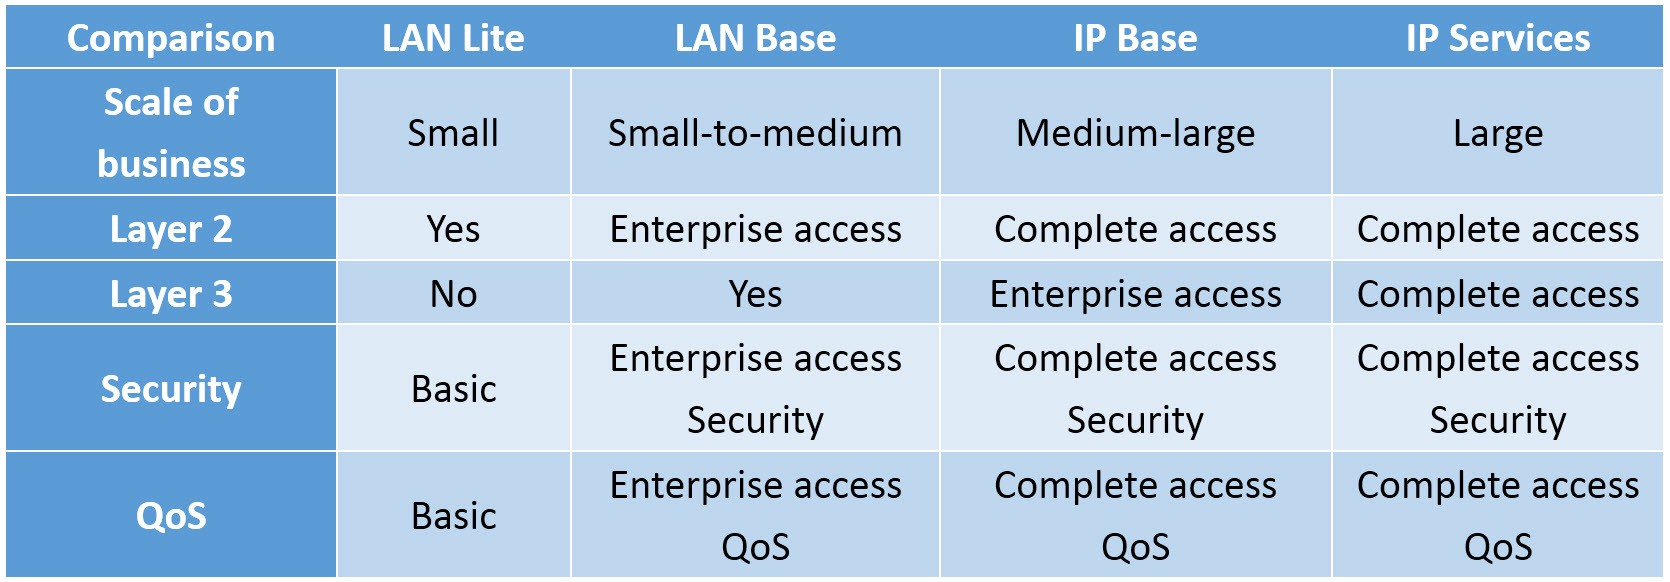 Lan lite vs Lan base vs IP base vs IP services - Mark Tusi